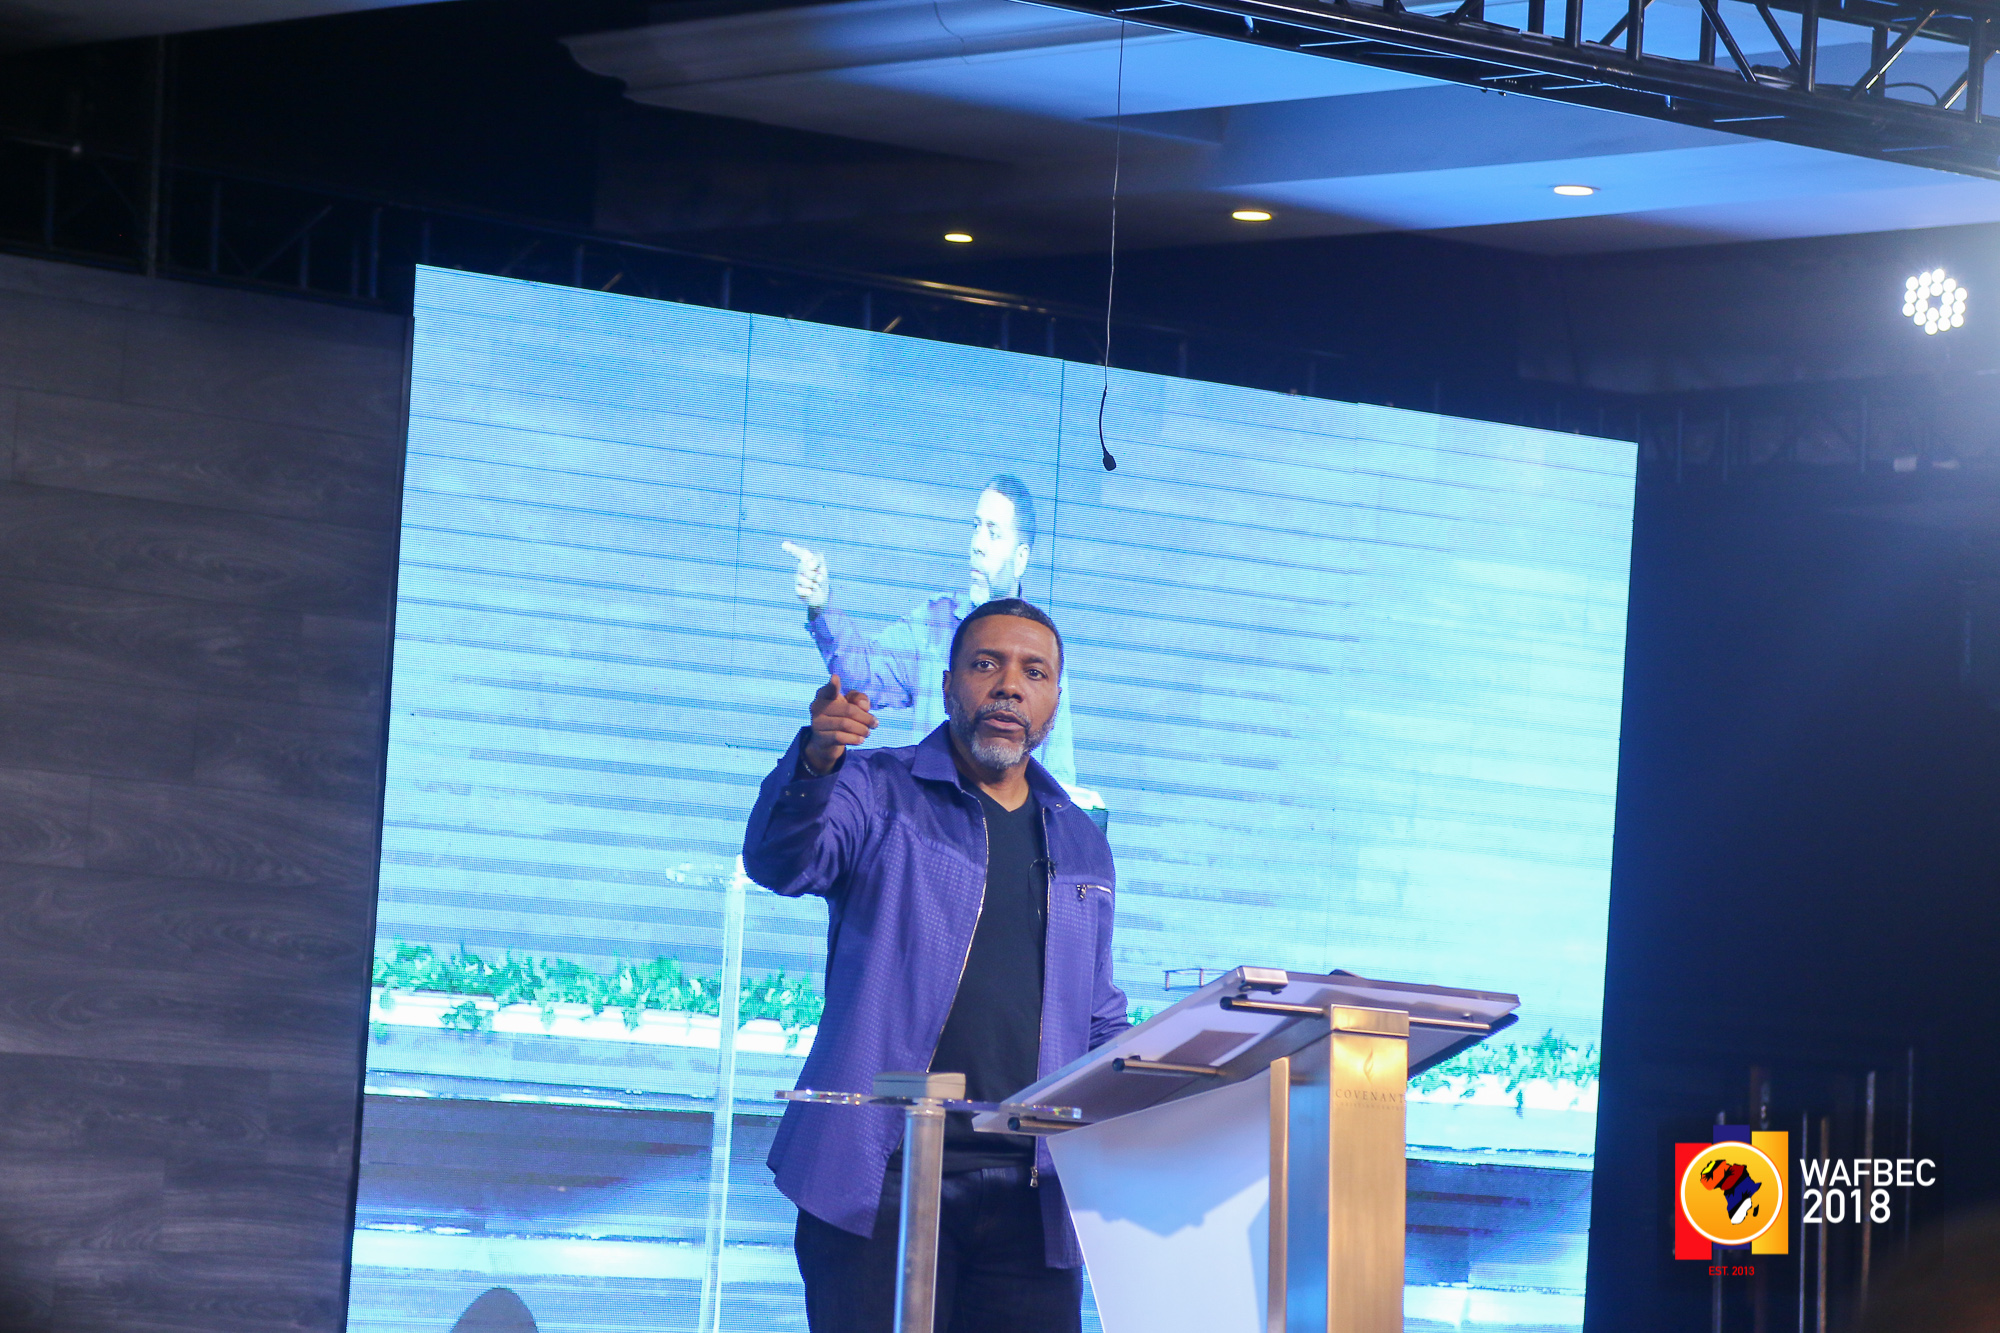 WAFBEC 2018 – DAY 4 (EVENING SESSION 1) with Dr. Creflo Dollar